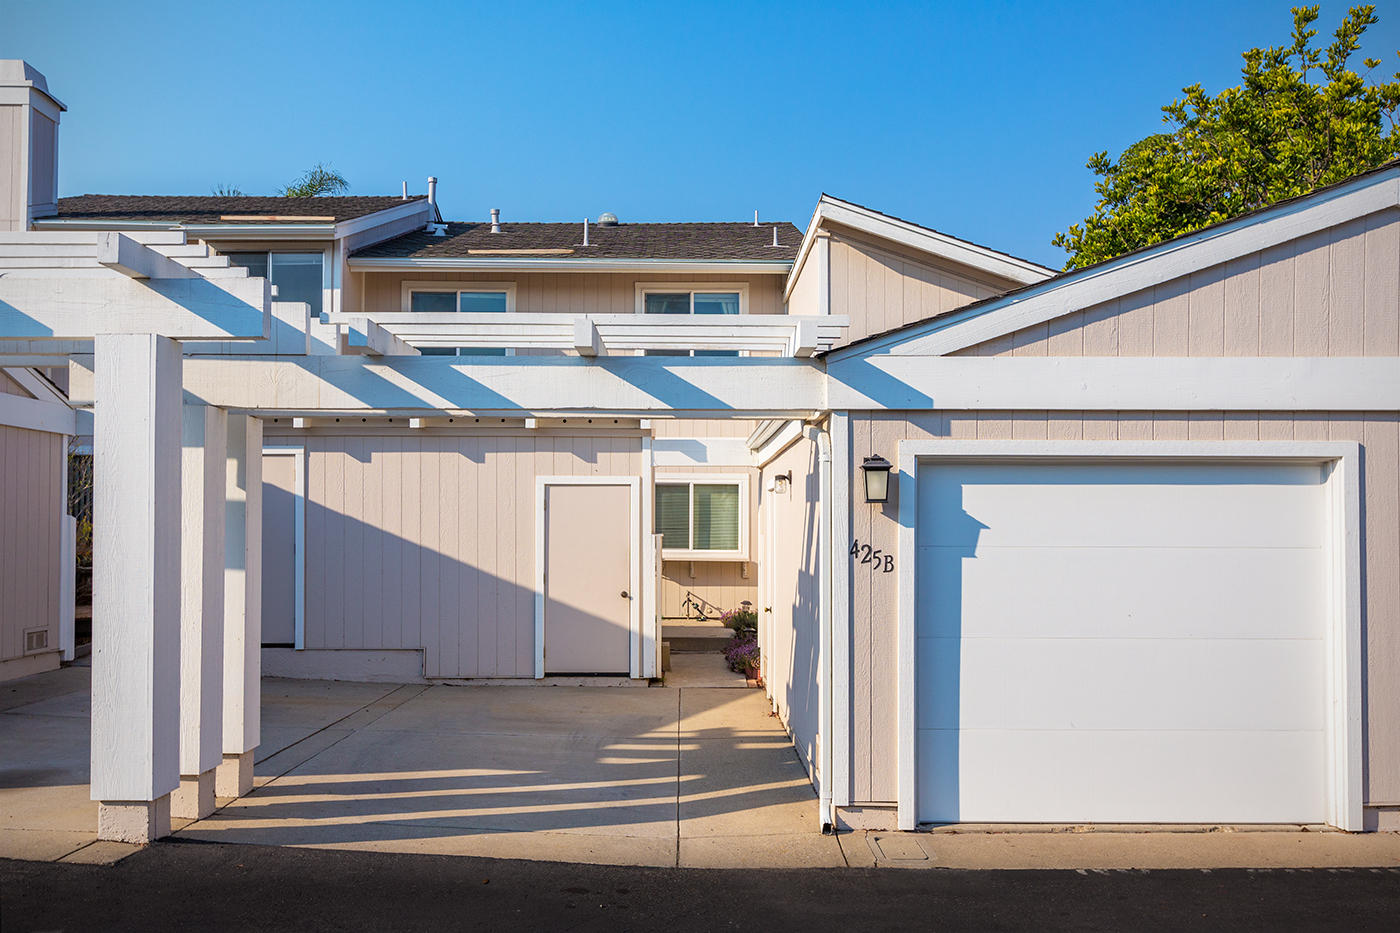 Property photo for 425 Cannon Green Dr #B Goleta, California 93117 - 17-3931